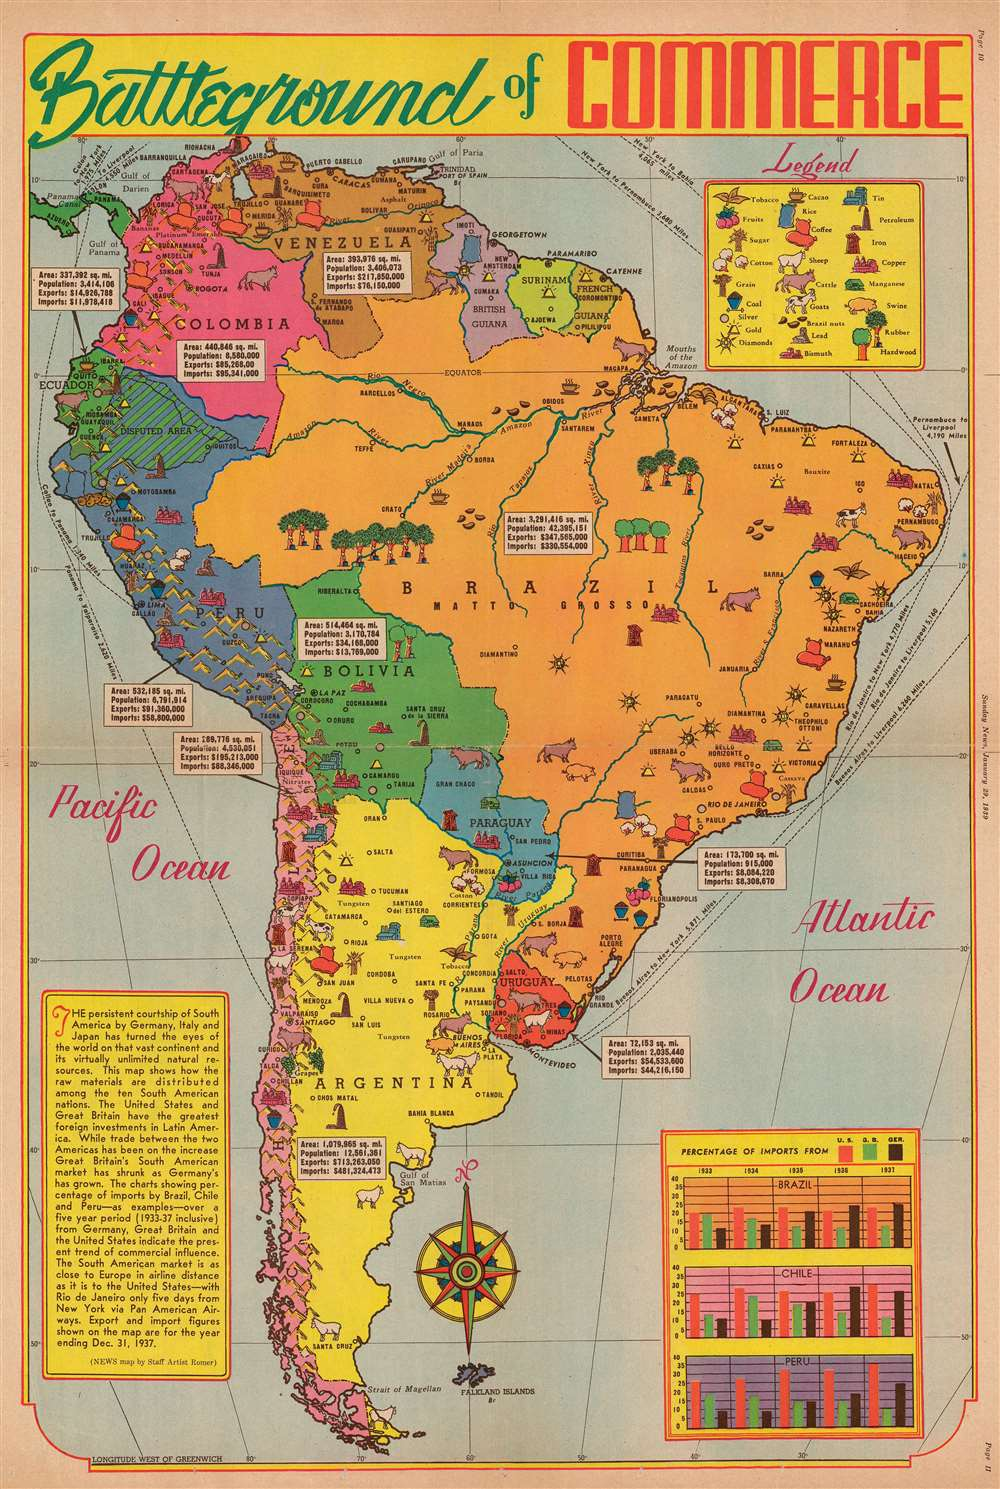 1939 Romer Pictorial Resource Map of South America